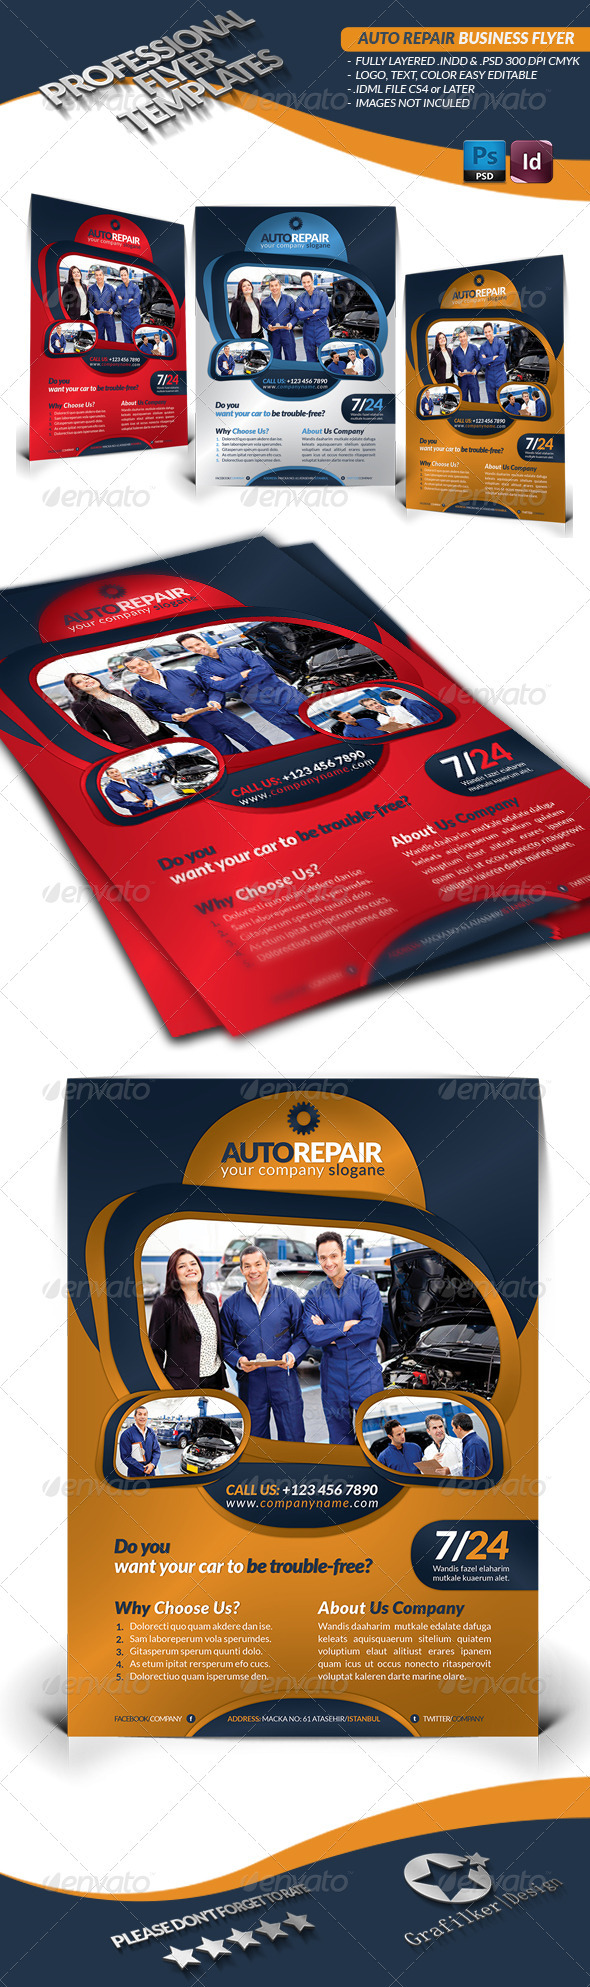 Auto Repair Business Flyer - Commerce Flyers